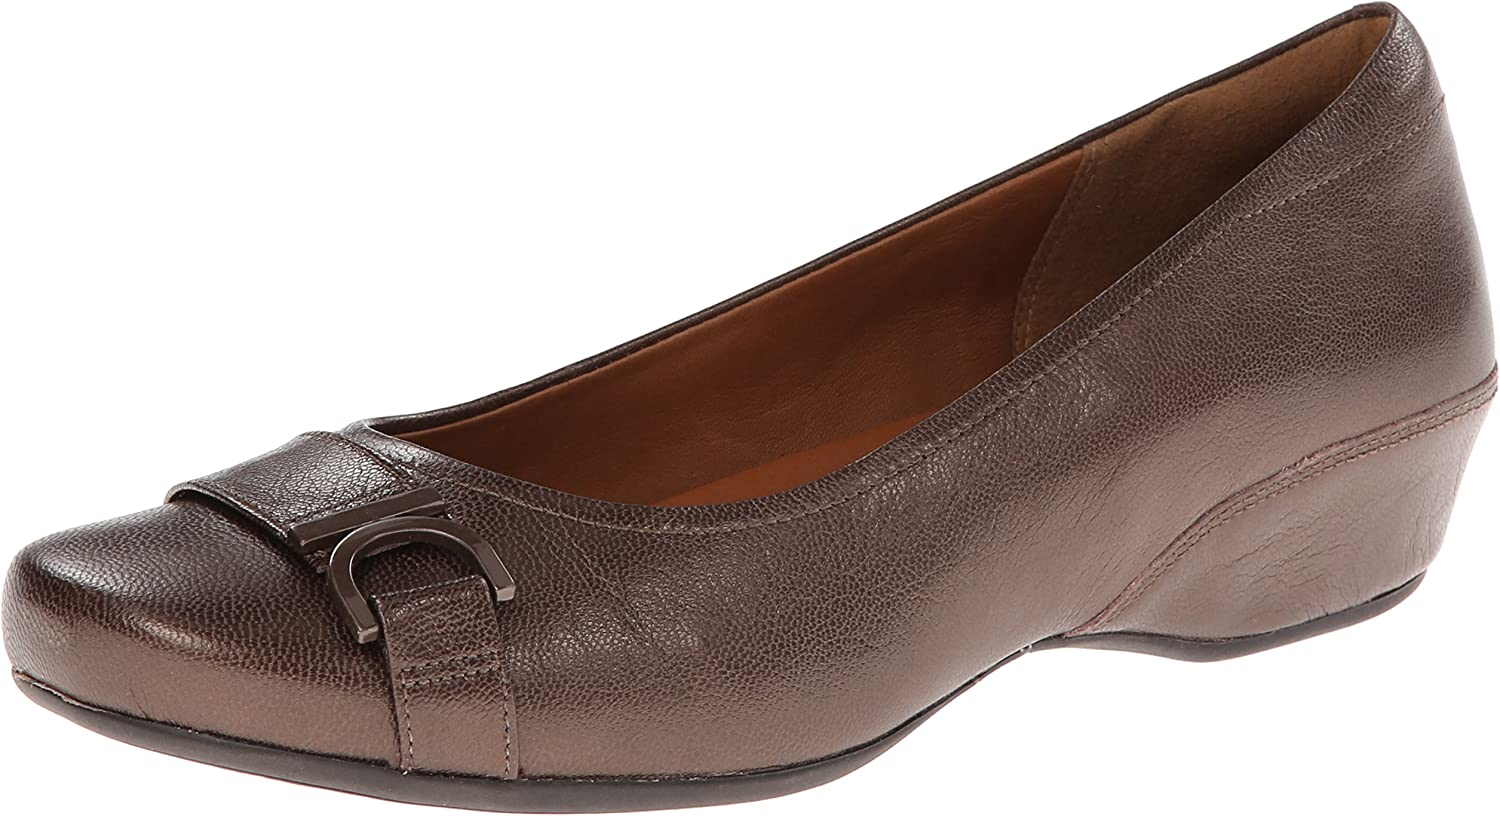 Clarks Very popular! Women's Time sale Concert Band Pump Wedge